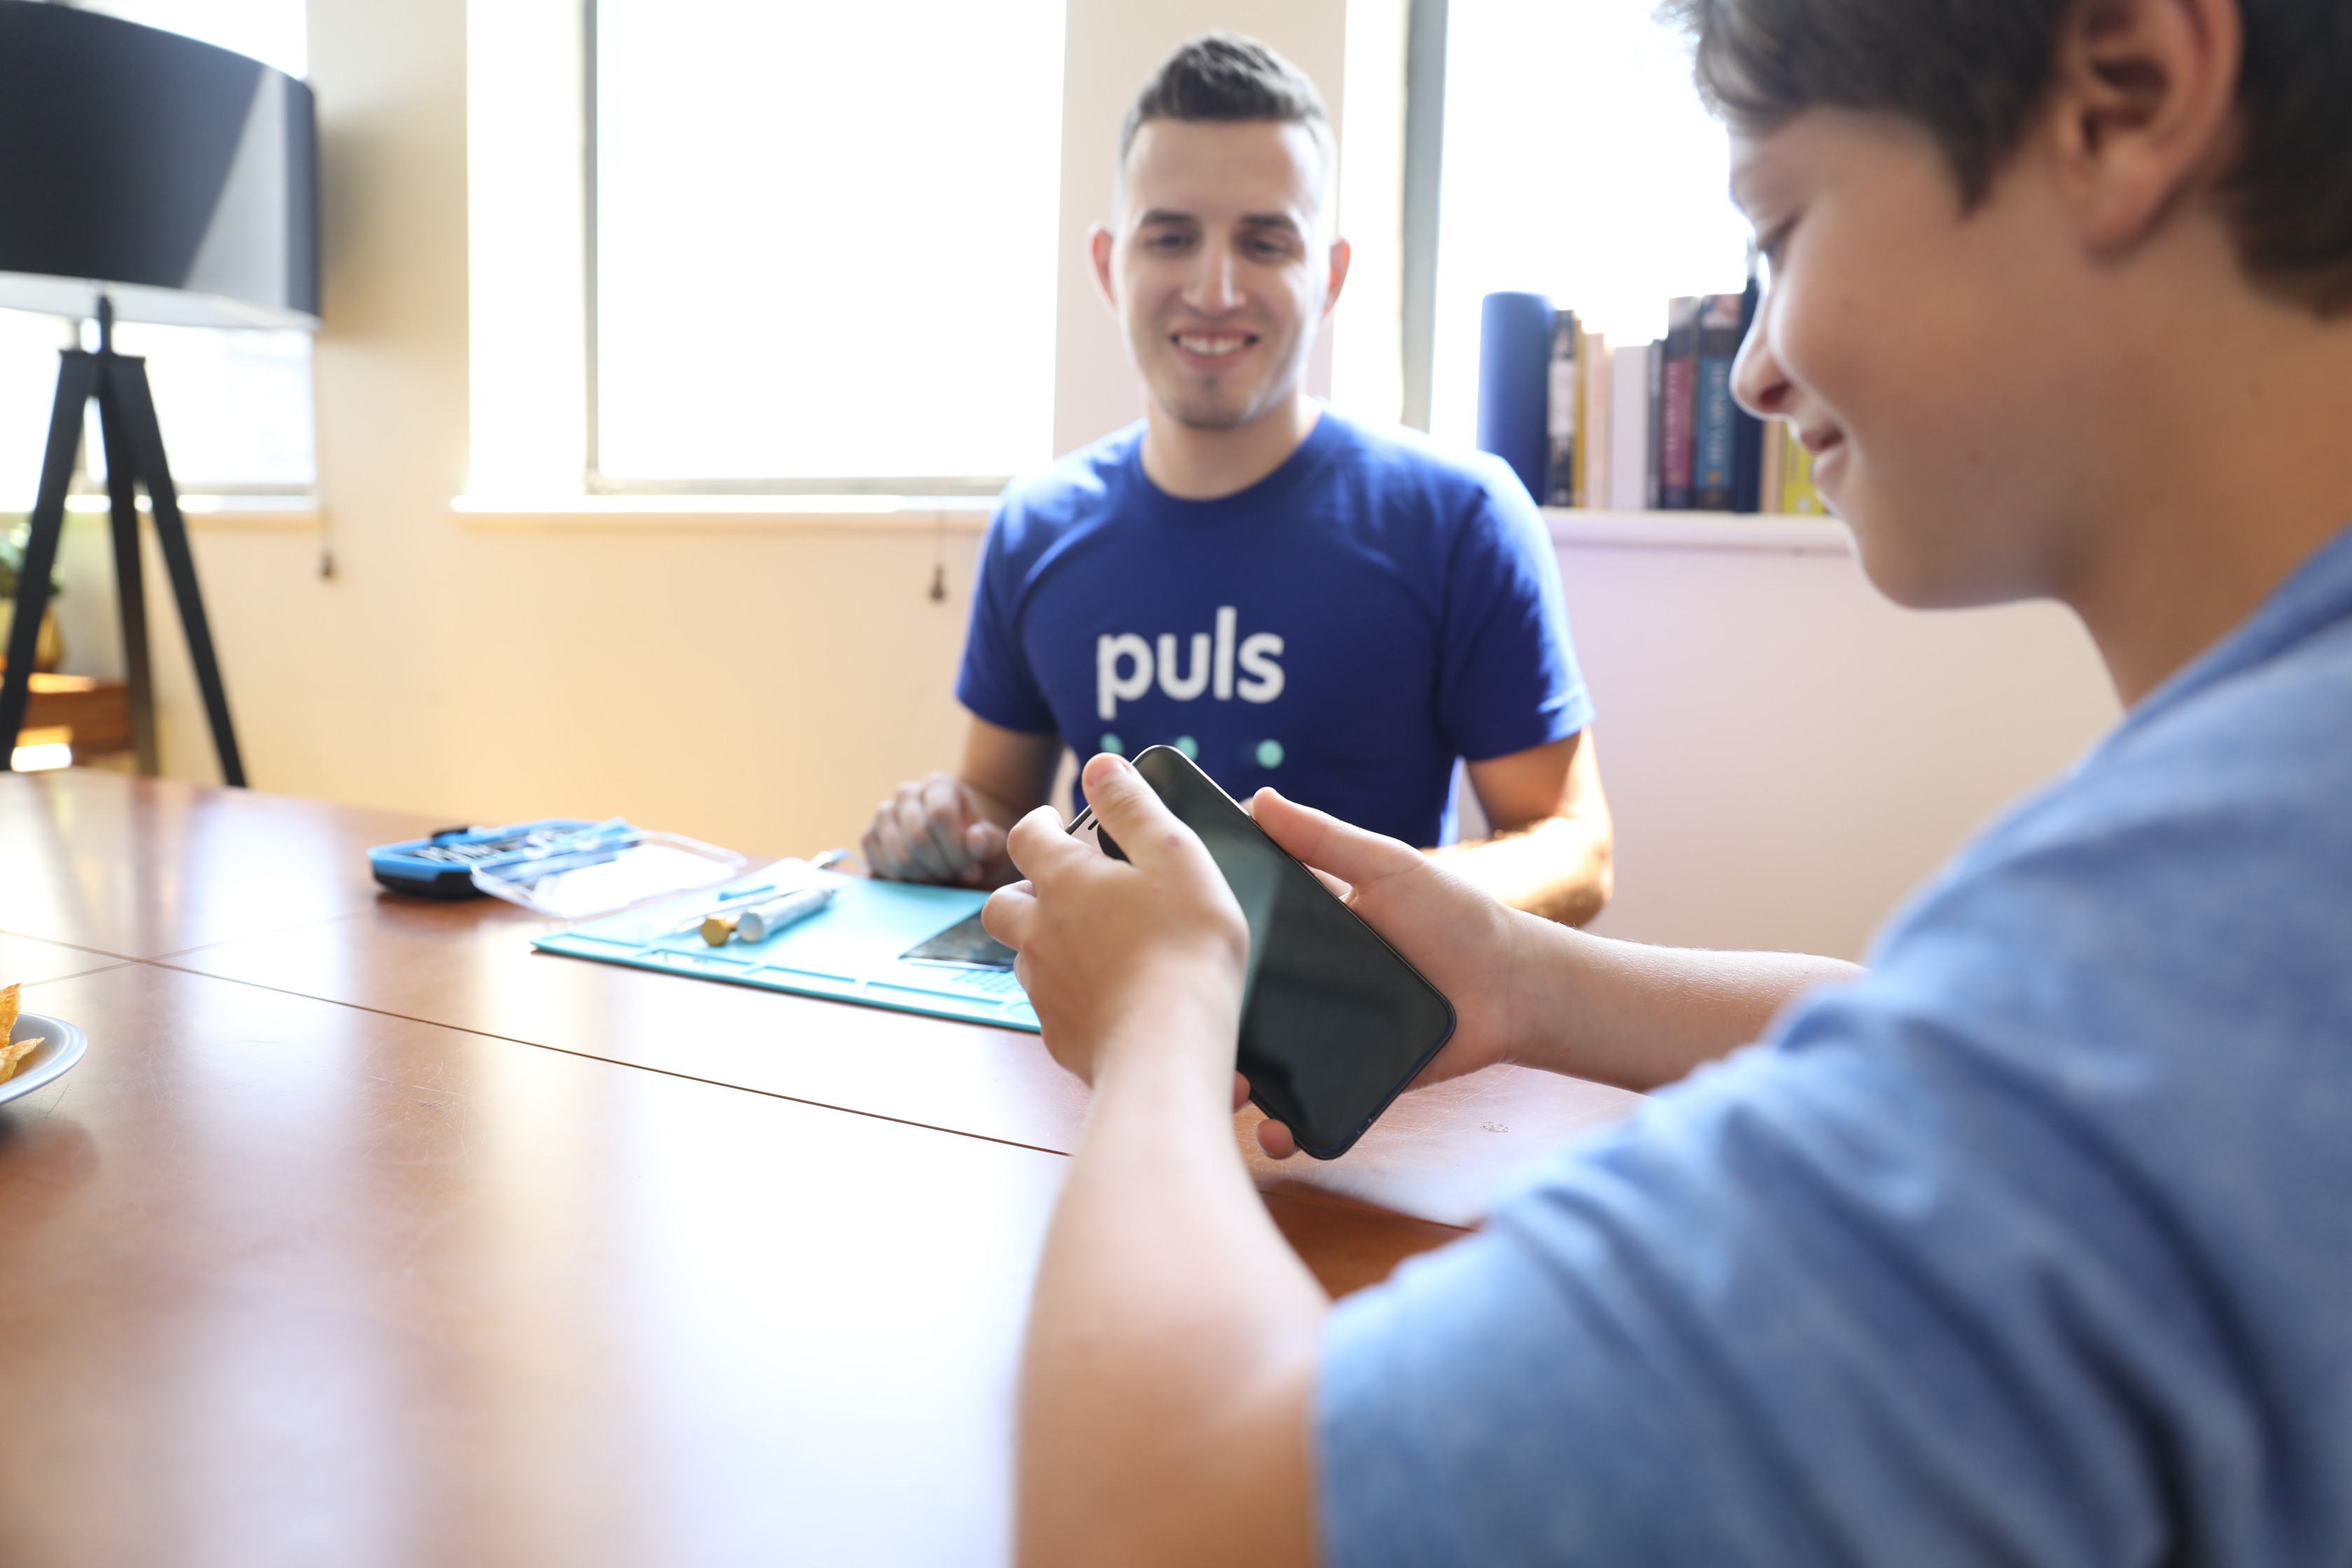 Puls repair for iPhone touchscreen common problems